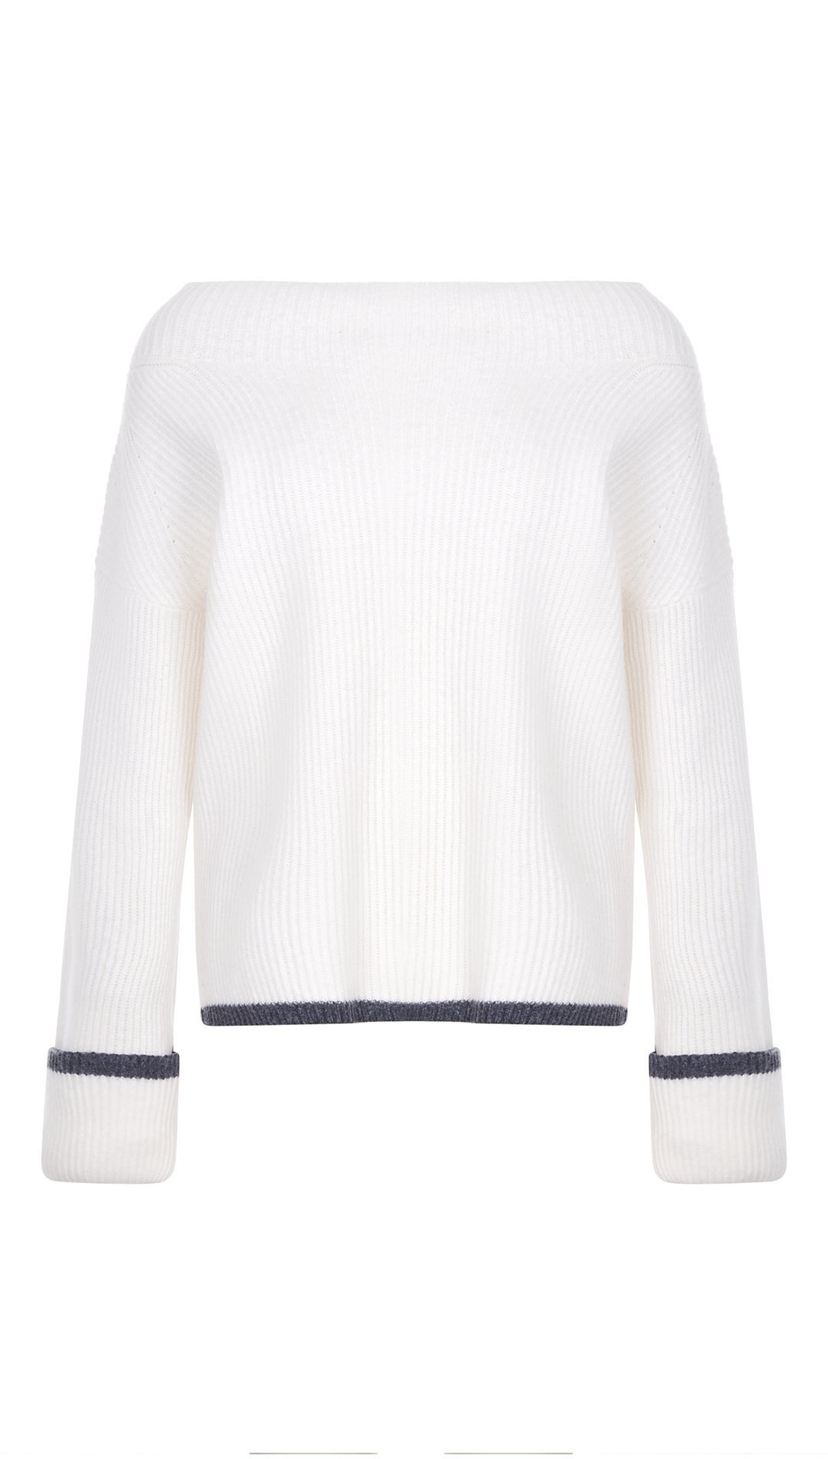 Charli Sola Sweater Tops